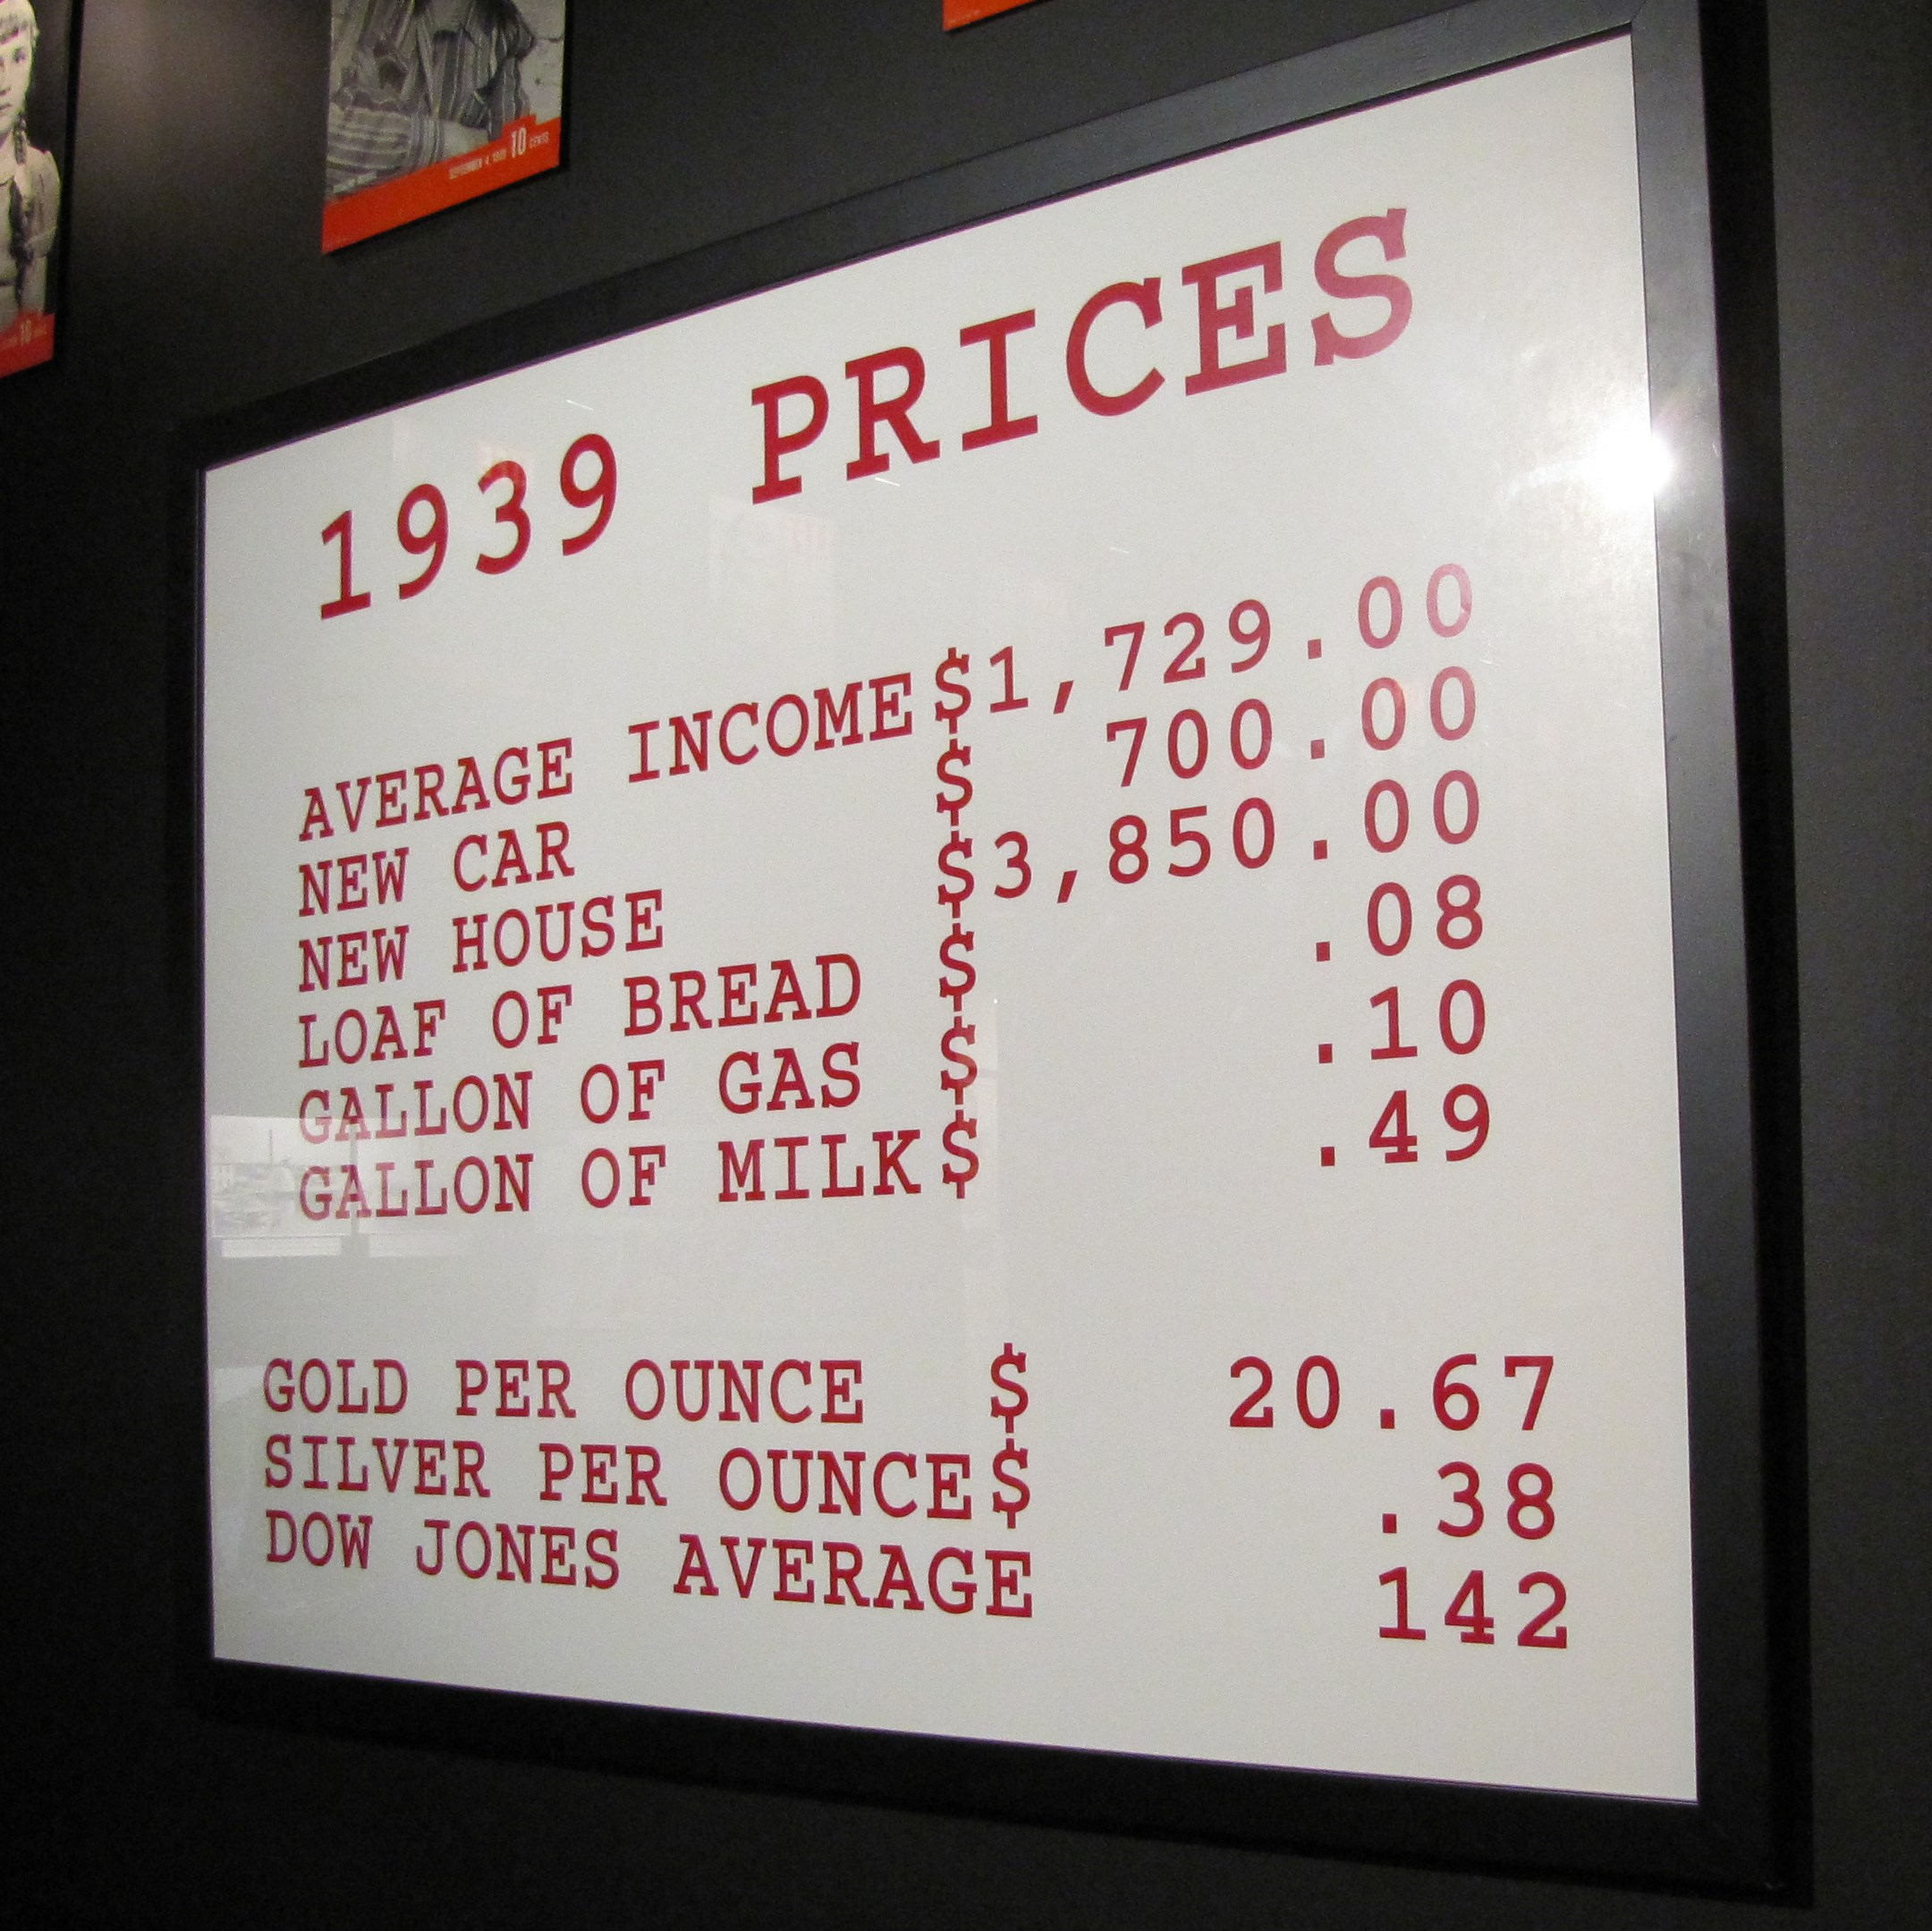 1939 Prices – Times Have Changed